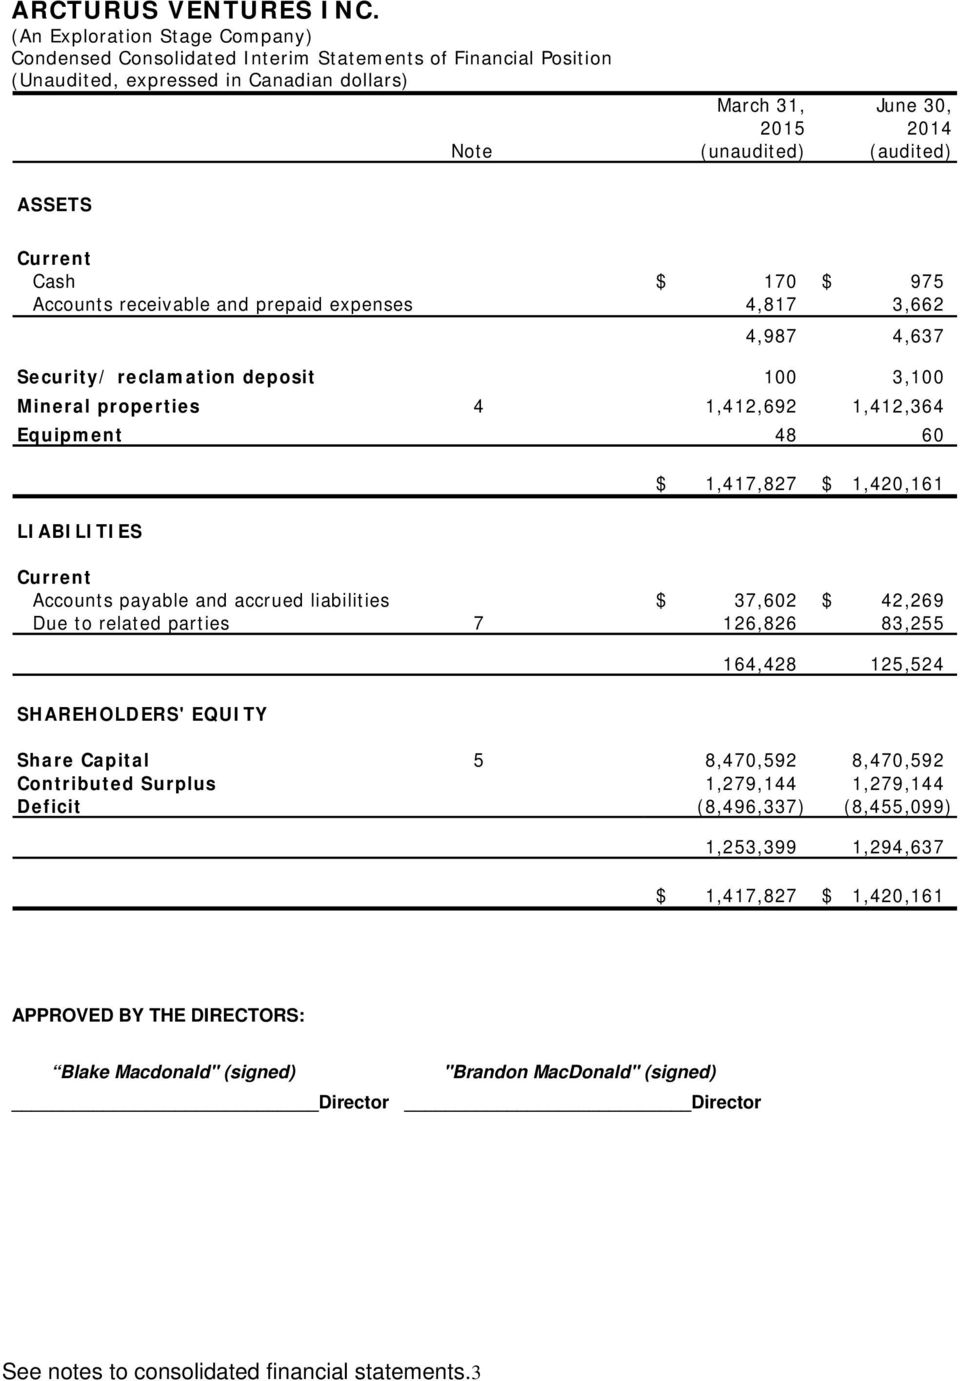 liabilities $ 37,602 $ 42,269 Due to related parties 7 126,826 83,255 SHAREHOLDERS' EQUITY 164,428 125,524 Share Capital 5 8,470,592 8,470,592 Contributed Surplus 1,279,144 1,279,144 Deficit